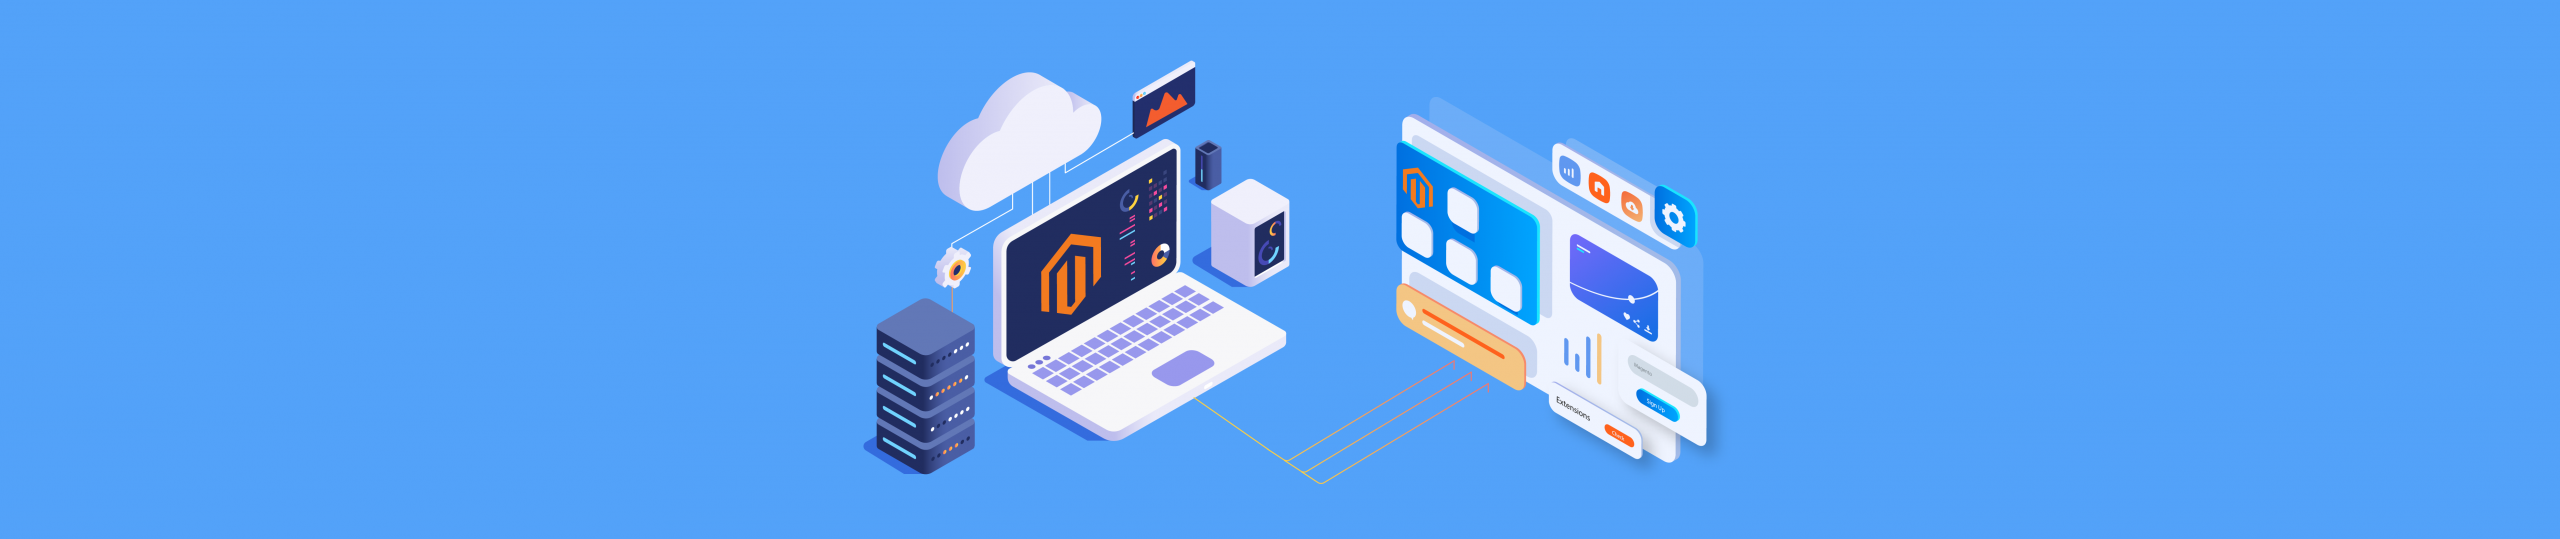 Top 9 Magento Extension Providers in 2021 [Updated]